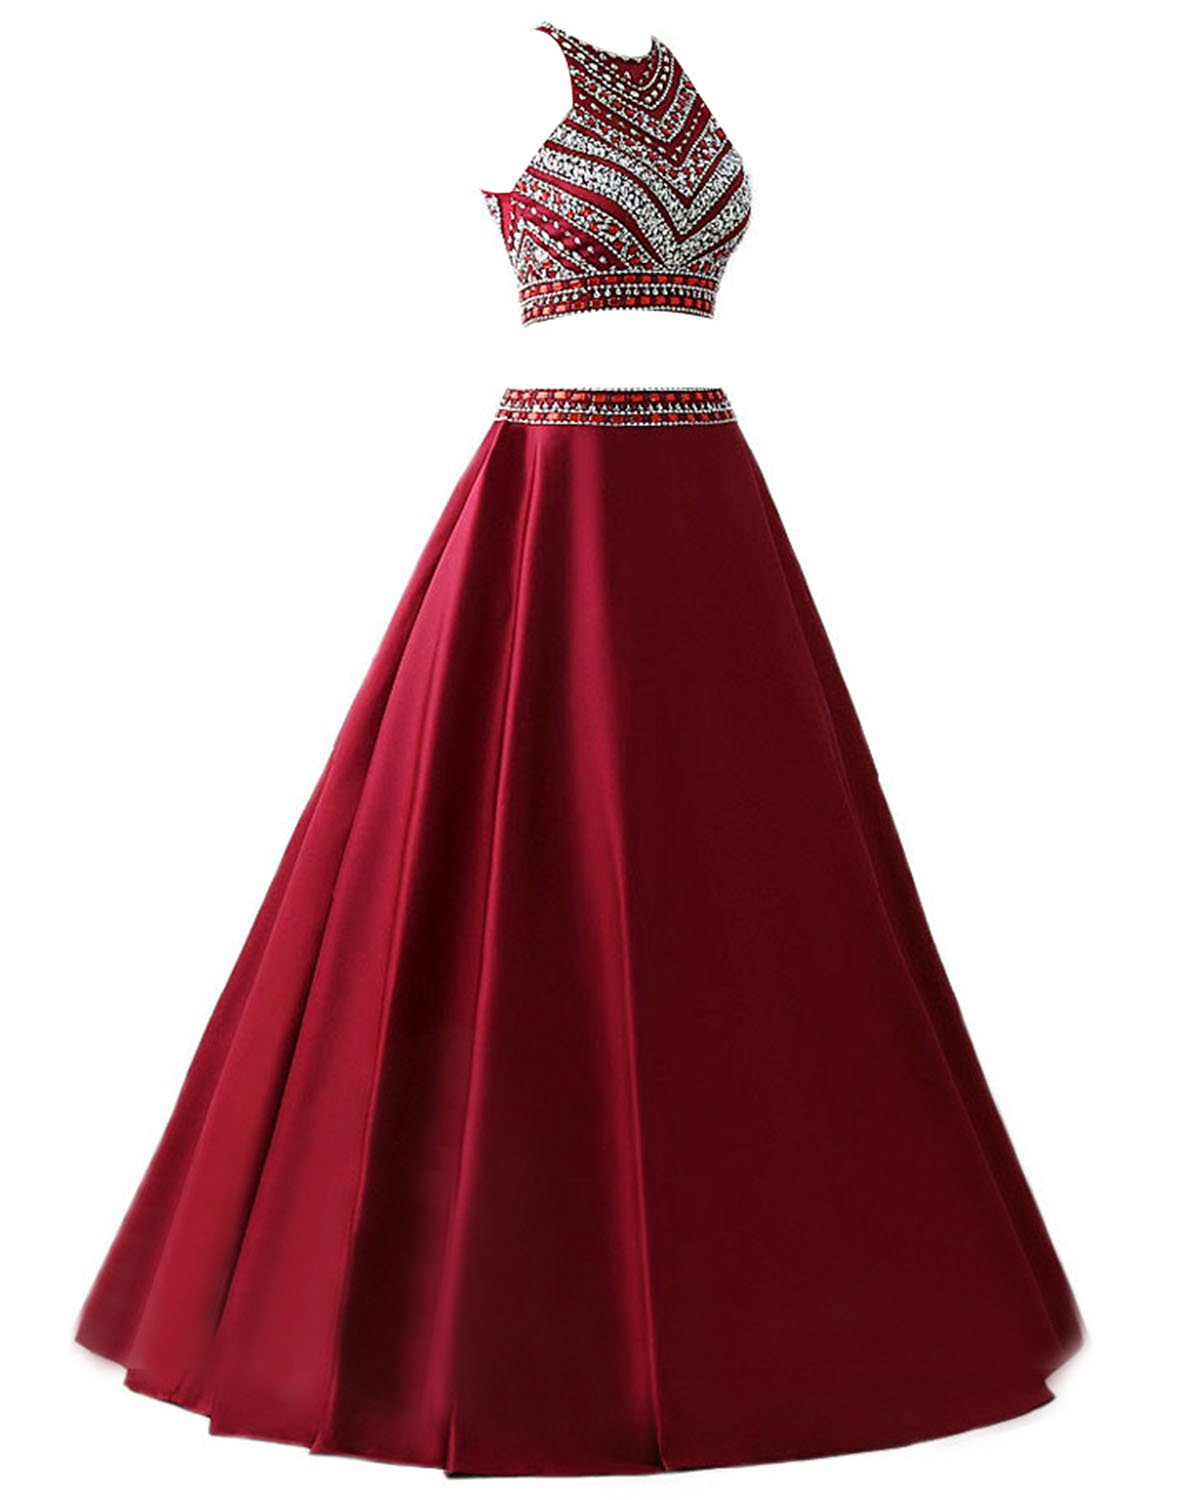 burgundy Prom Dress,Long Prom Dresses,2 pieces Prom Dresses,2 piece ...